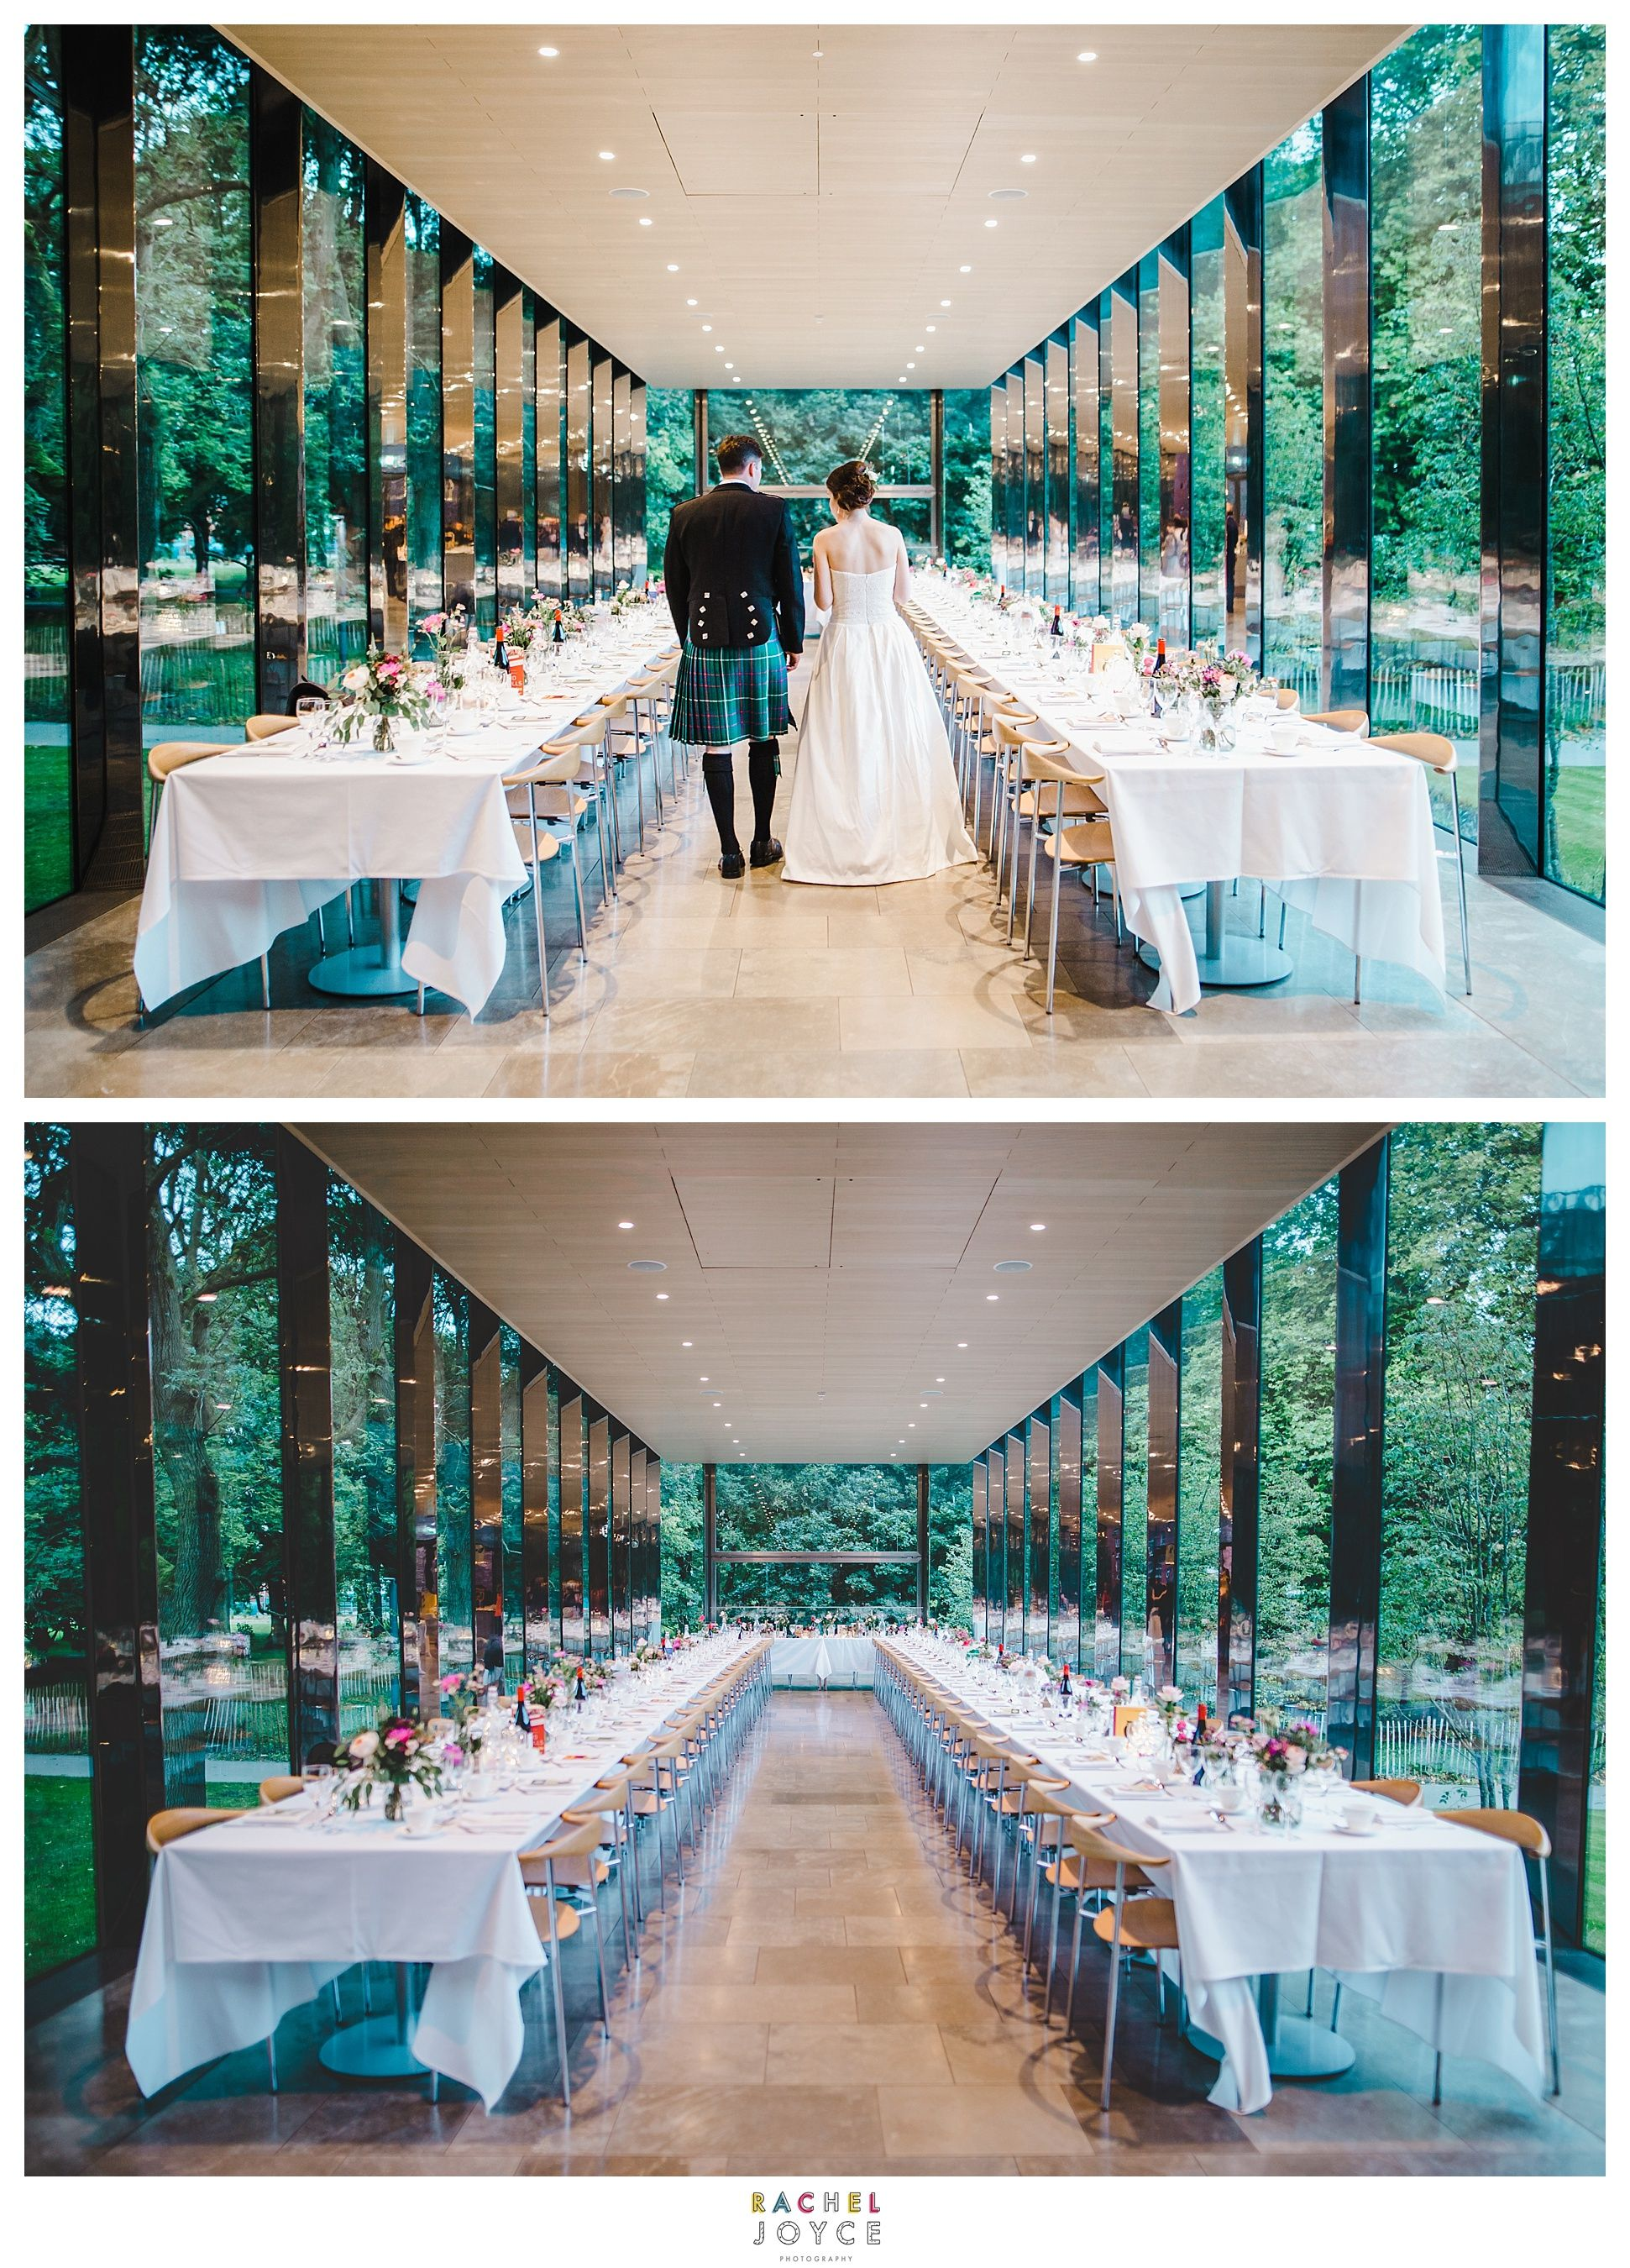 Wedding decorations inspirations manchester wedding table wedding decorations inspirations manchester wedding table decorations https junglespirit Gallery